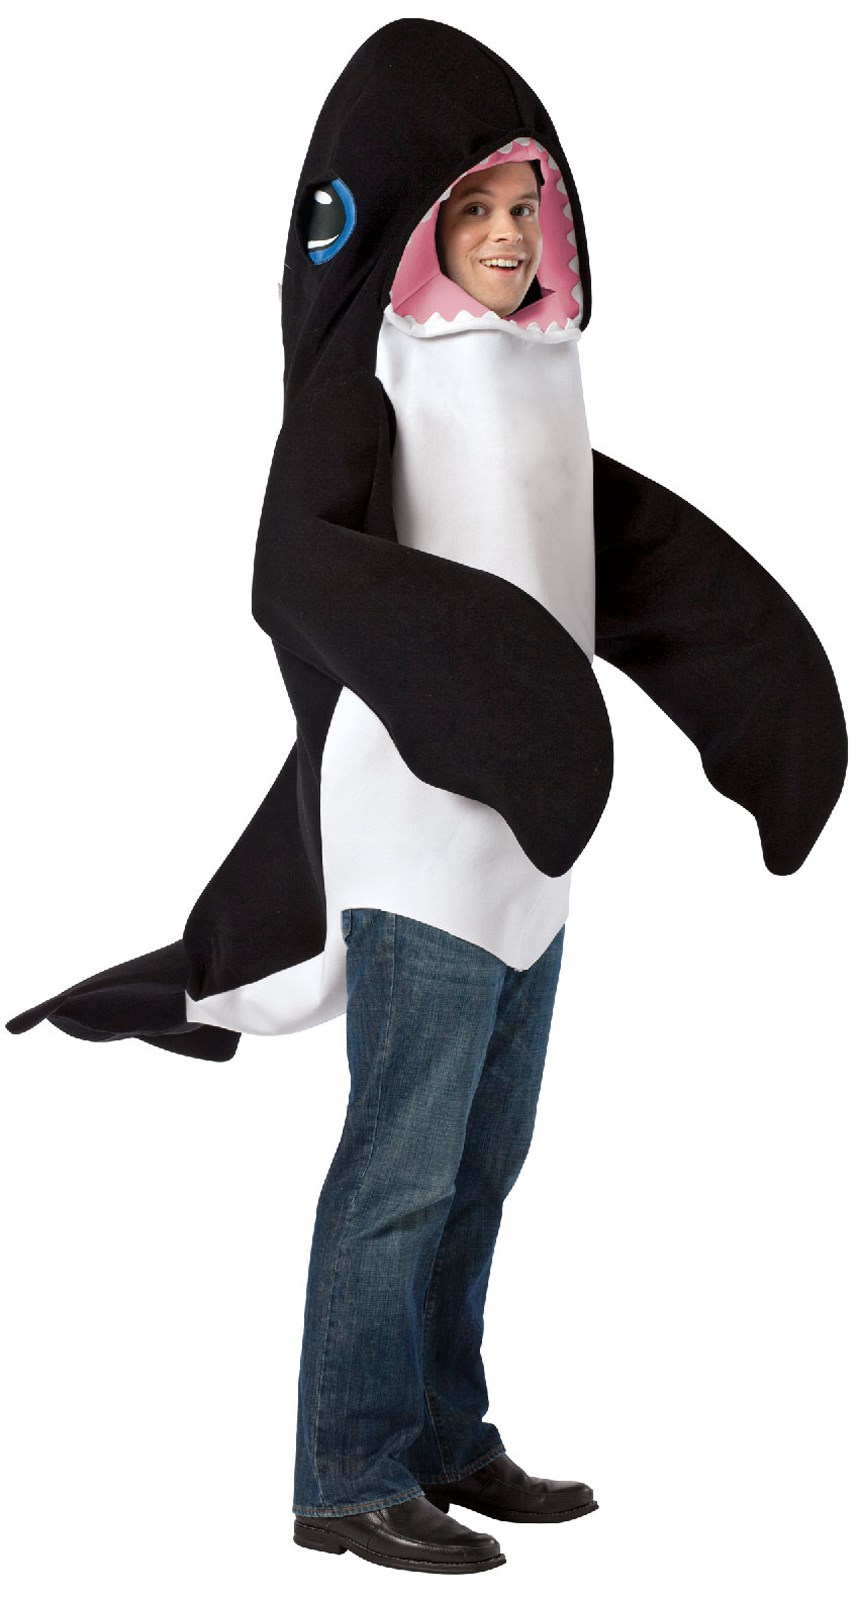 From the window to the wall whale - Killer Whale Adult Costume